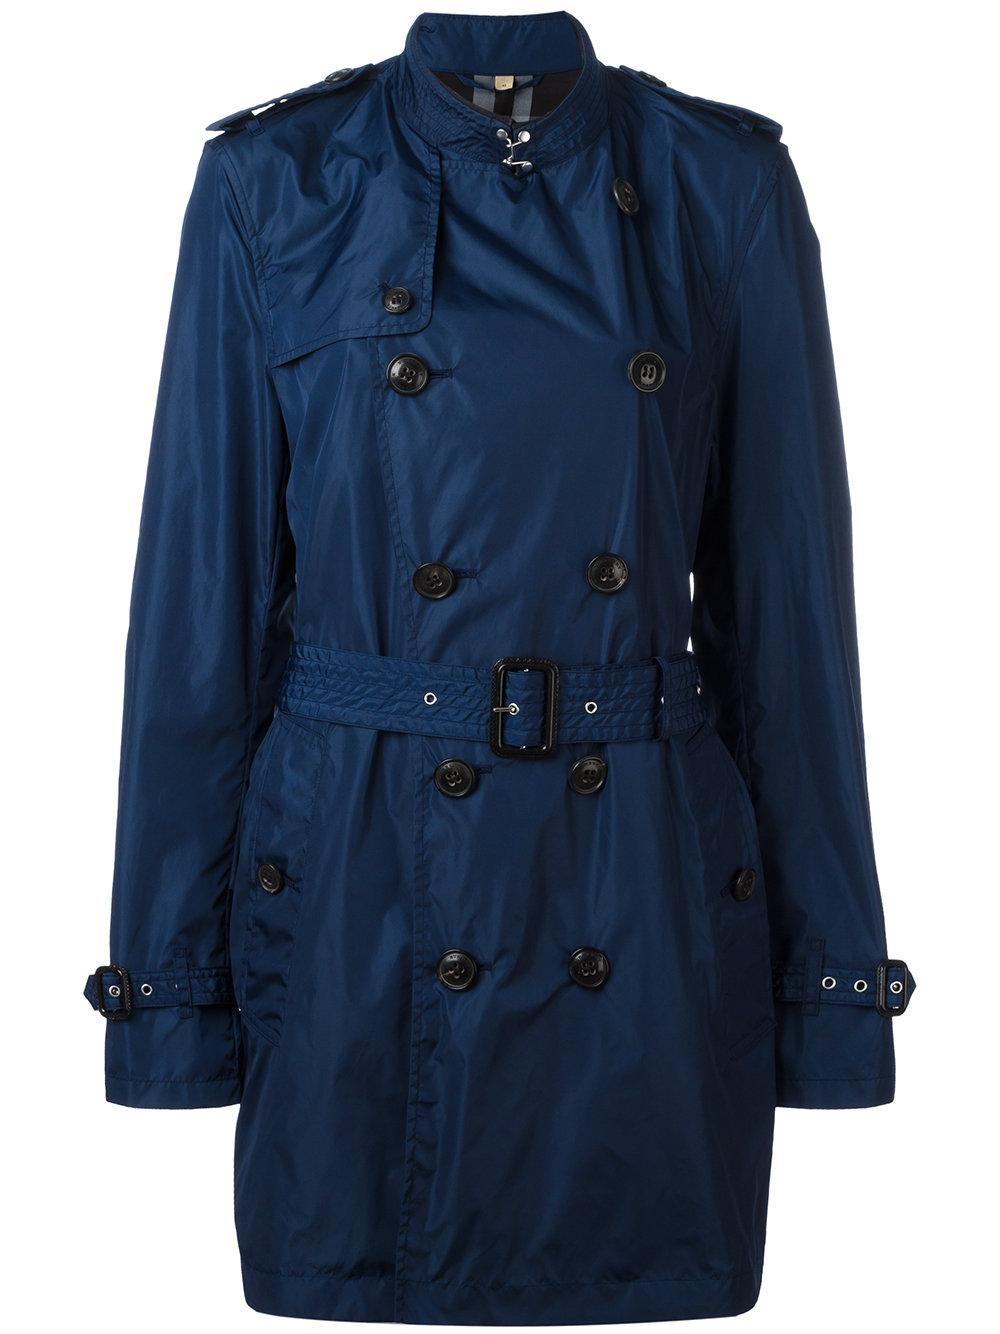 It turns out that right now is a great time to snag a deal on winter coats, since tons of them are up to 50 percent off at Nordstrom. We sifted through and found some great winter coats on sale.